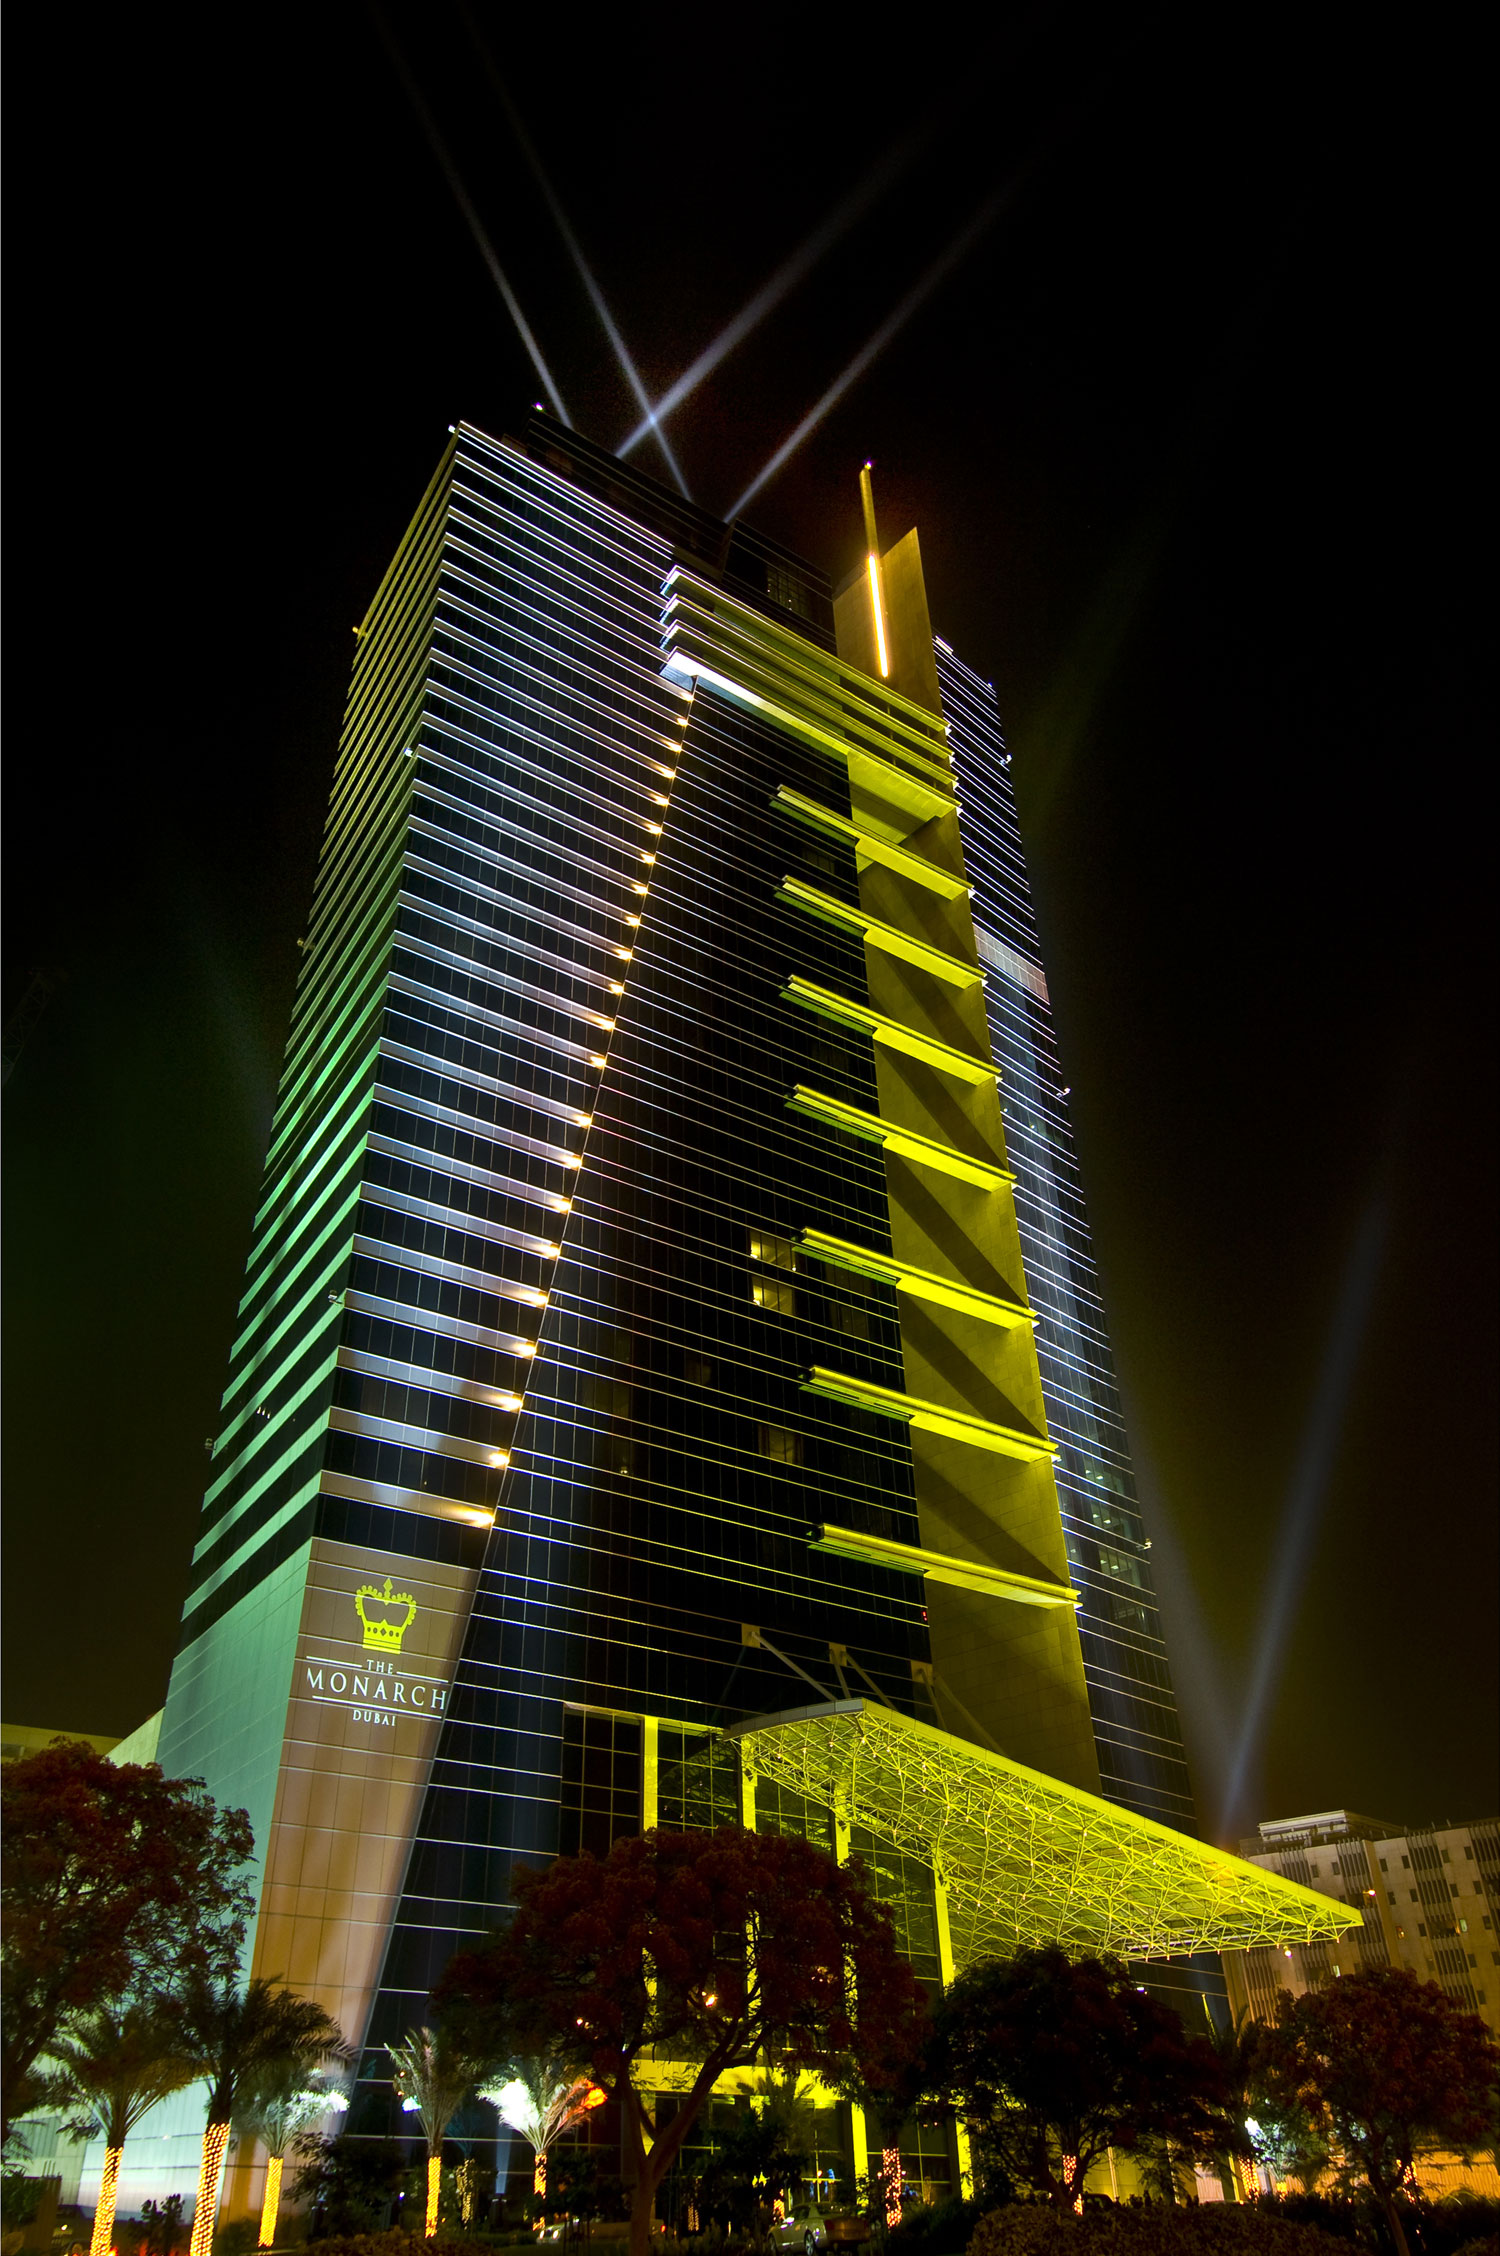 The Monarch Hotel, now known as The H Hotel Dubai